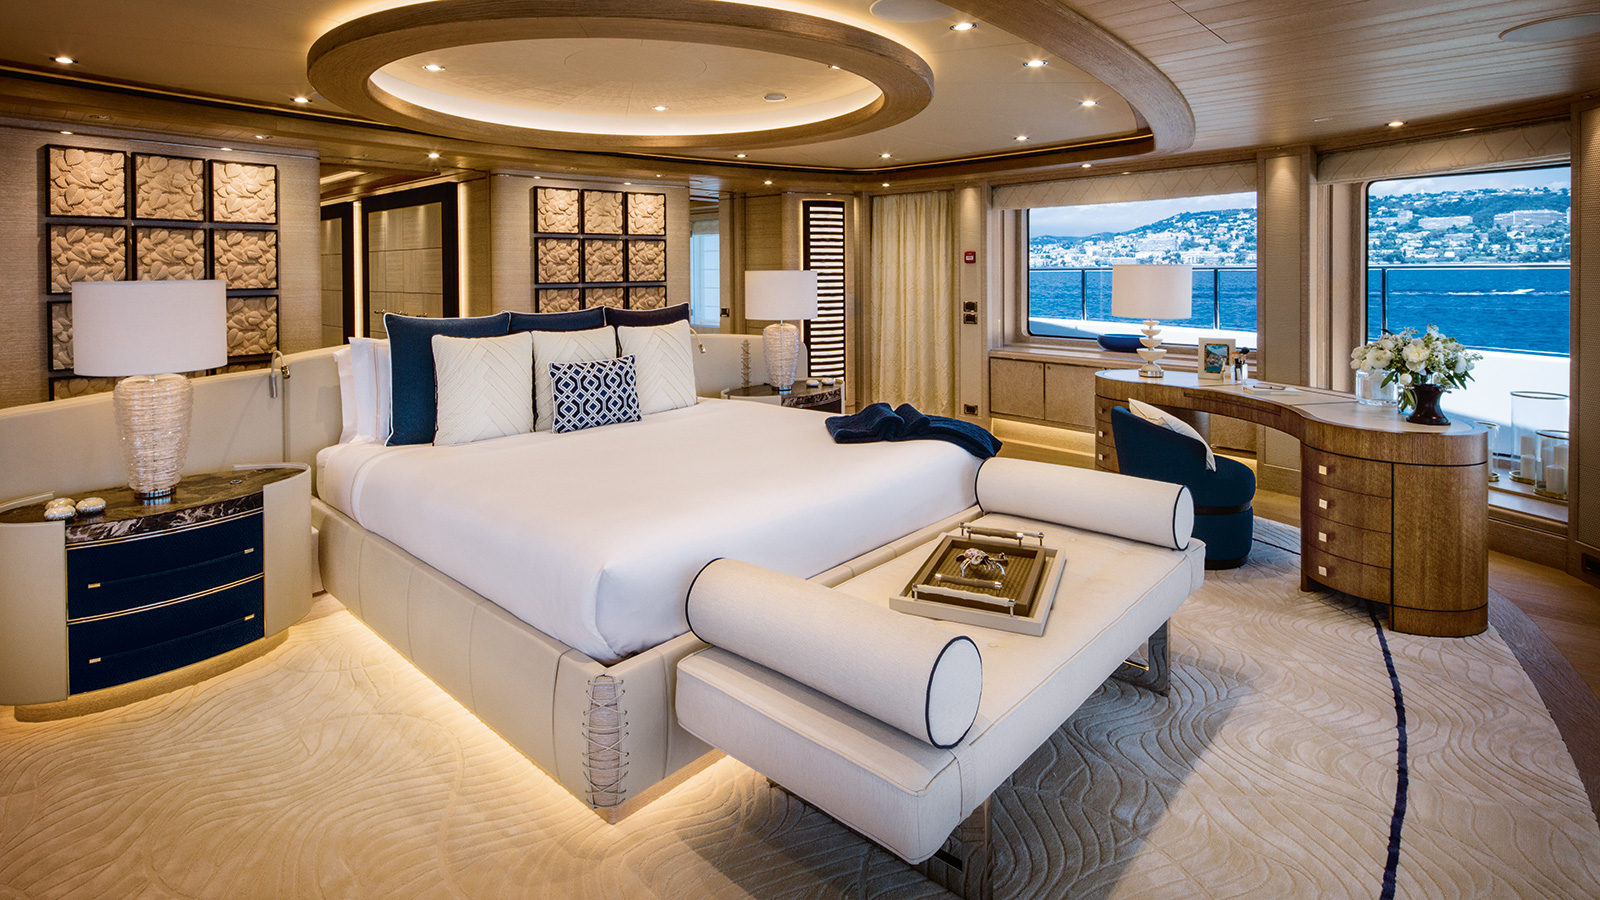 the-master-cabin-of-the-crn-superyacht-cloud-9-credit-maurizio-paradisi